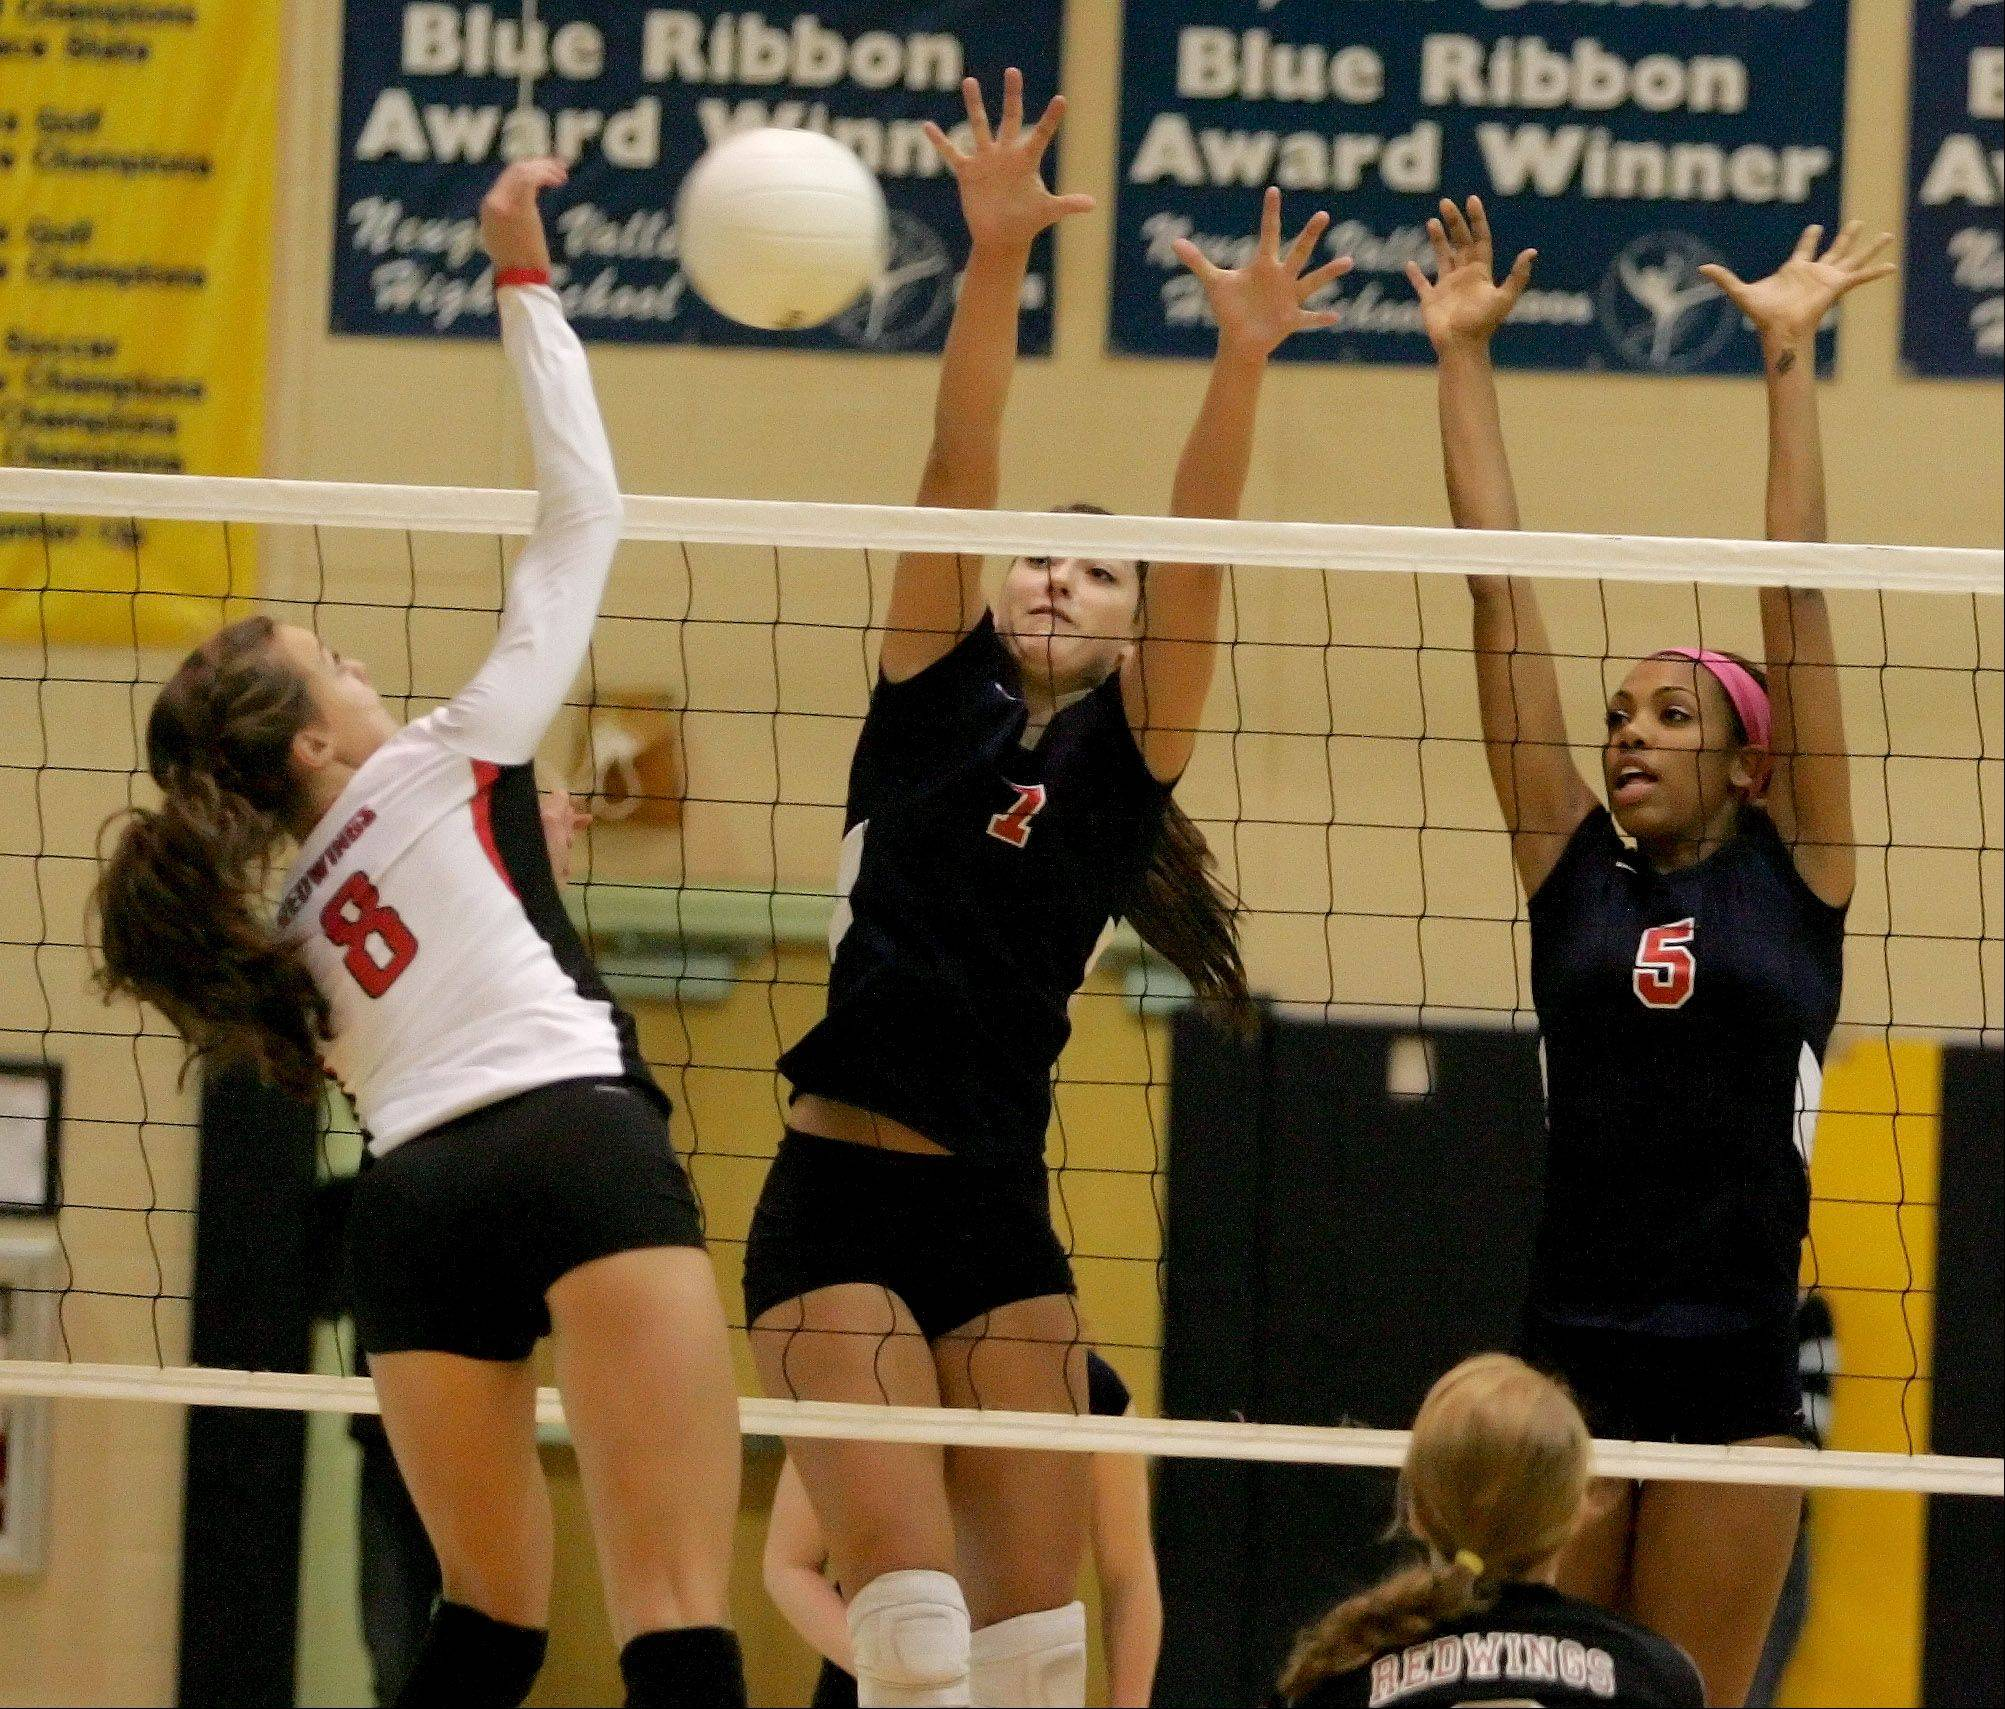 Nicki Barnes, left, of Benet, spikes the ball as Demi Heiss, center, and Nerissa Vogt, right, of West Aurora go up to block in girls volleyball Neuqua Valley sectional semifinals in Naperville on Tuesday.